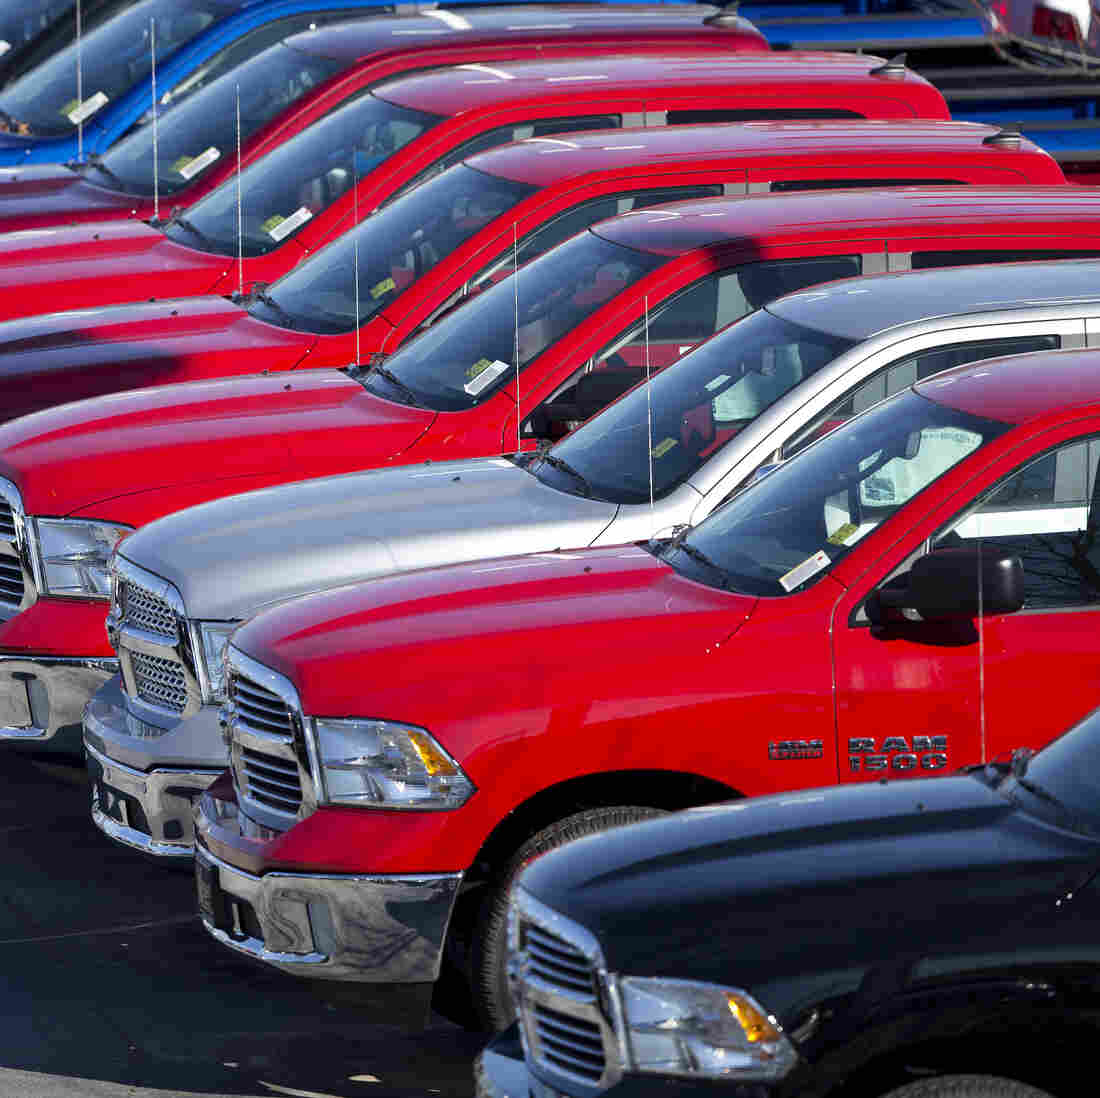 Low Gas Prices Give SUV Sales A Boost, But Automakers Take Long View